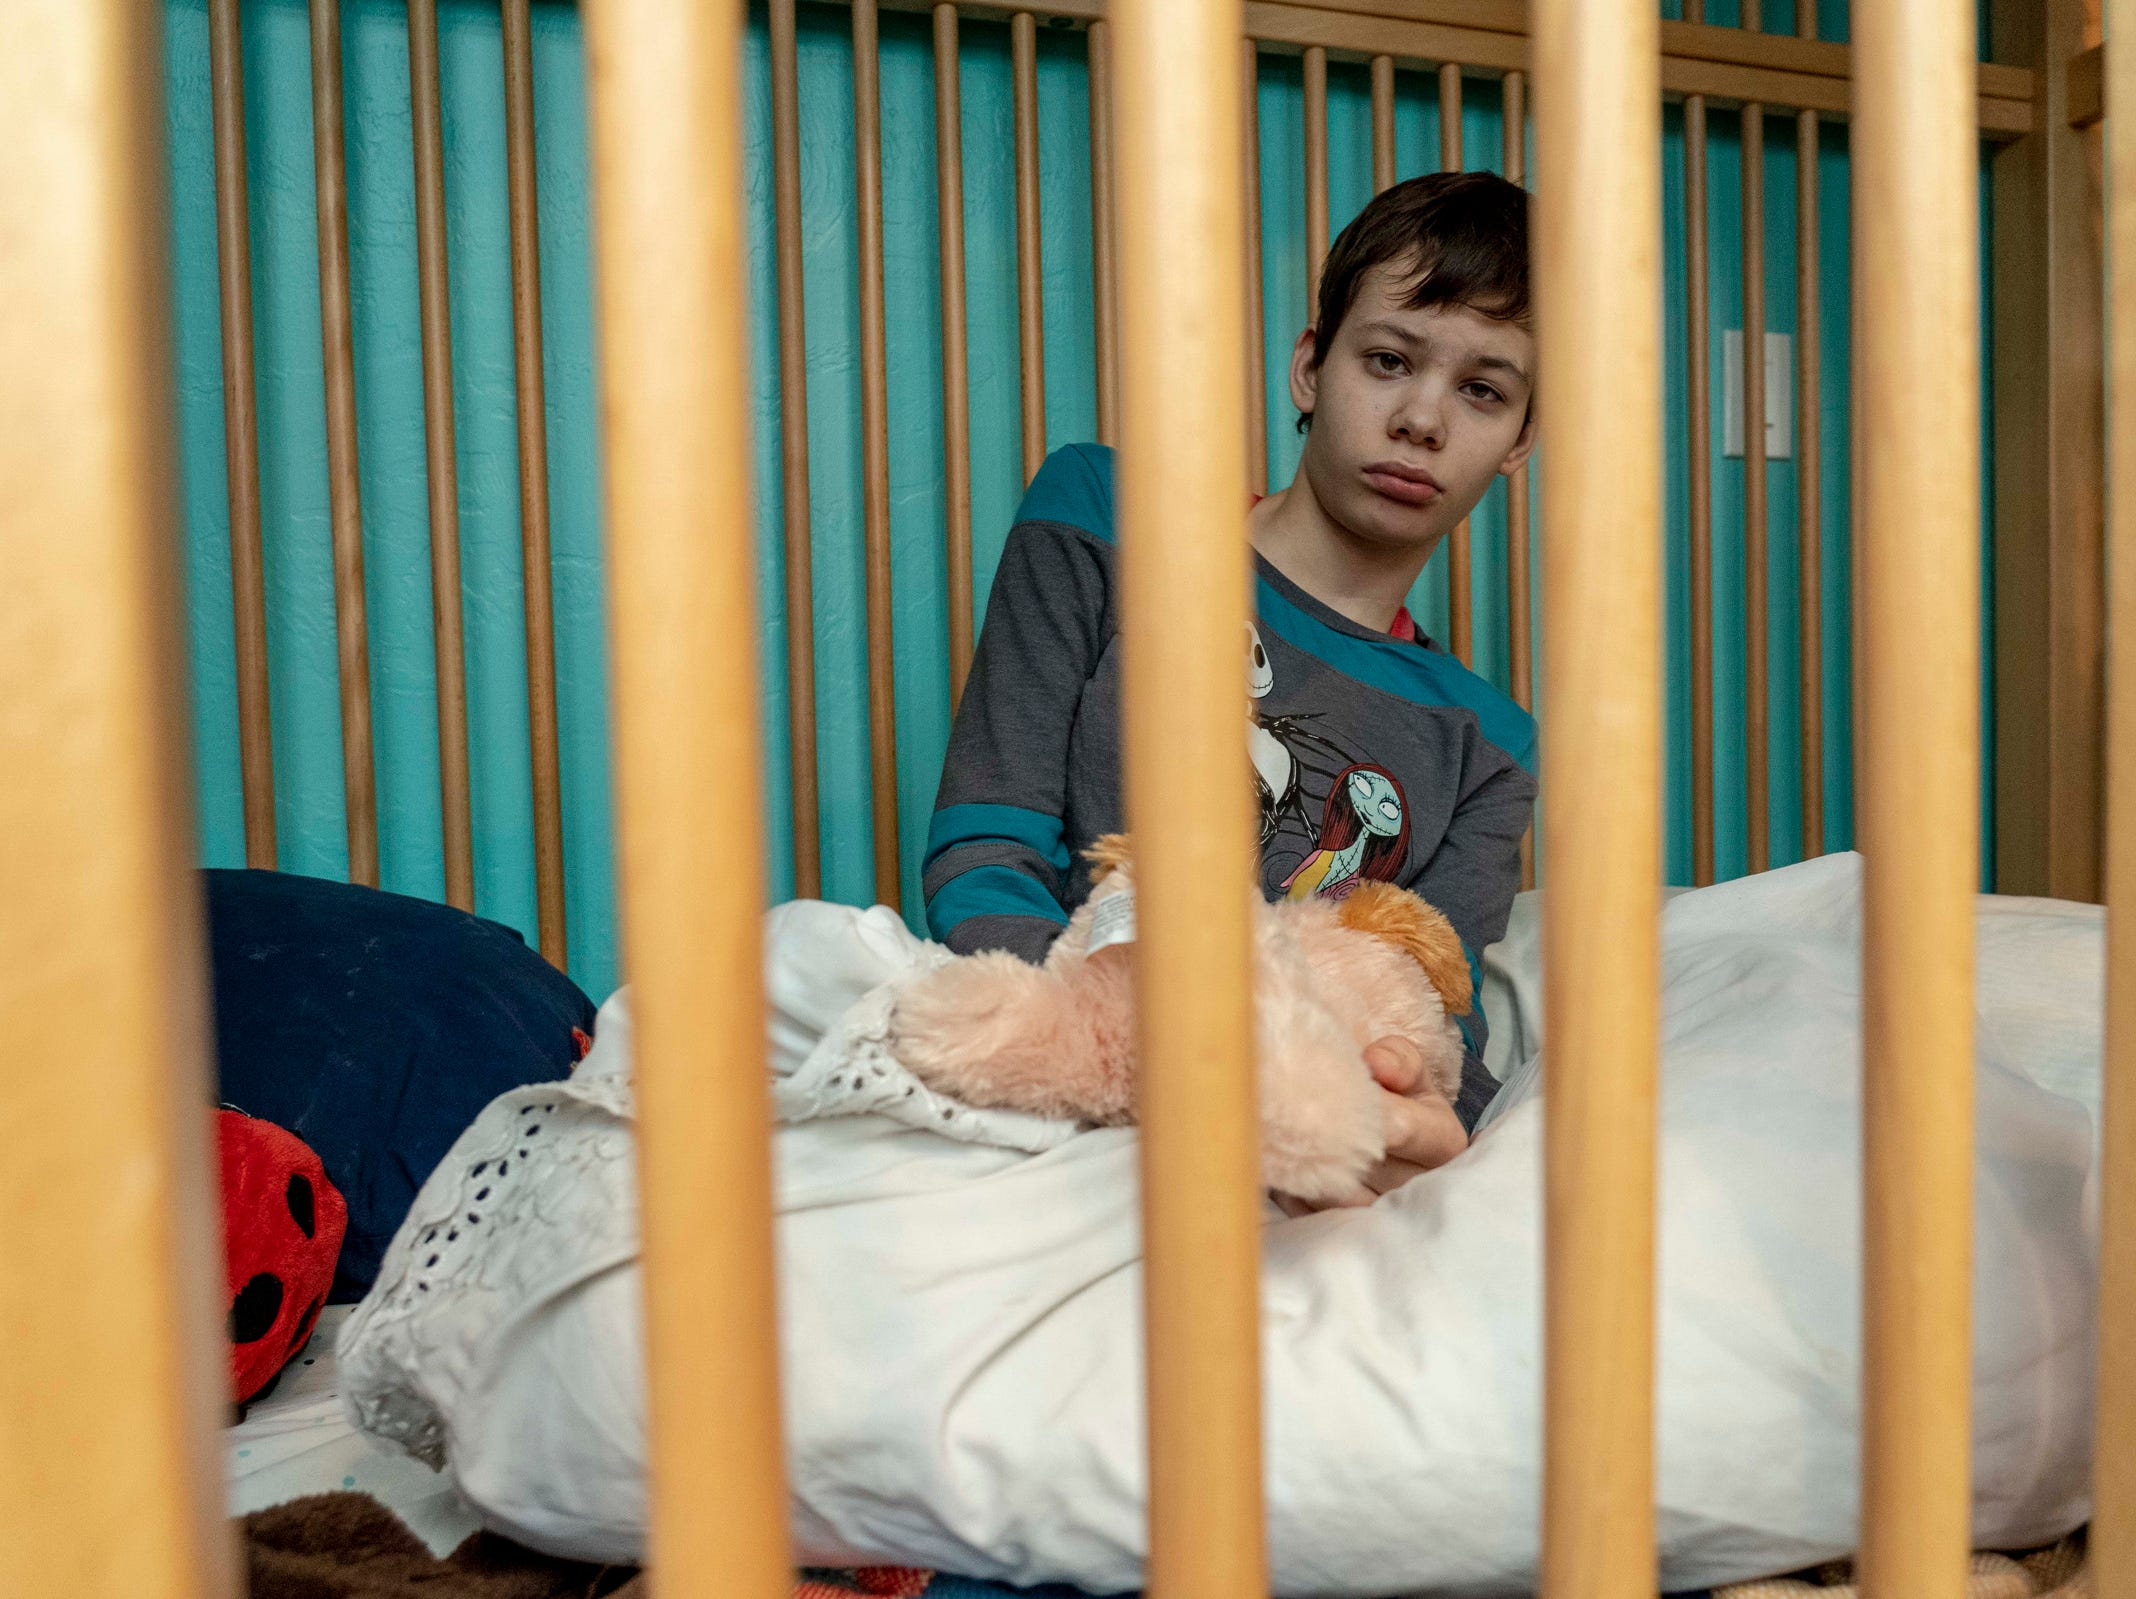 Fifteen-year-old Julianna Wadsack of Tucson sits in a KayserBettern bed, a durable piece of medical equipment designed to provide a safe environment for people with neurodevelopmental disorders and obtained through a medical prescription.